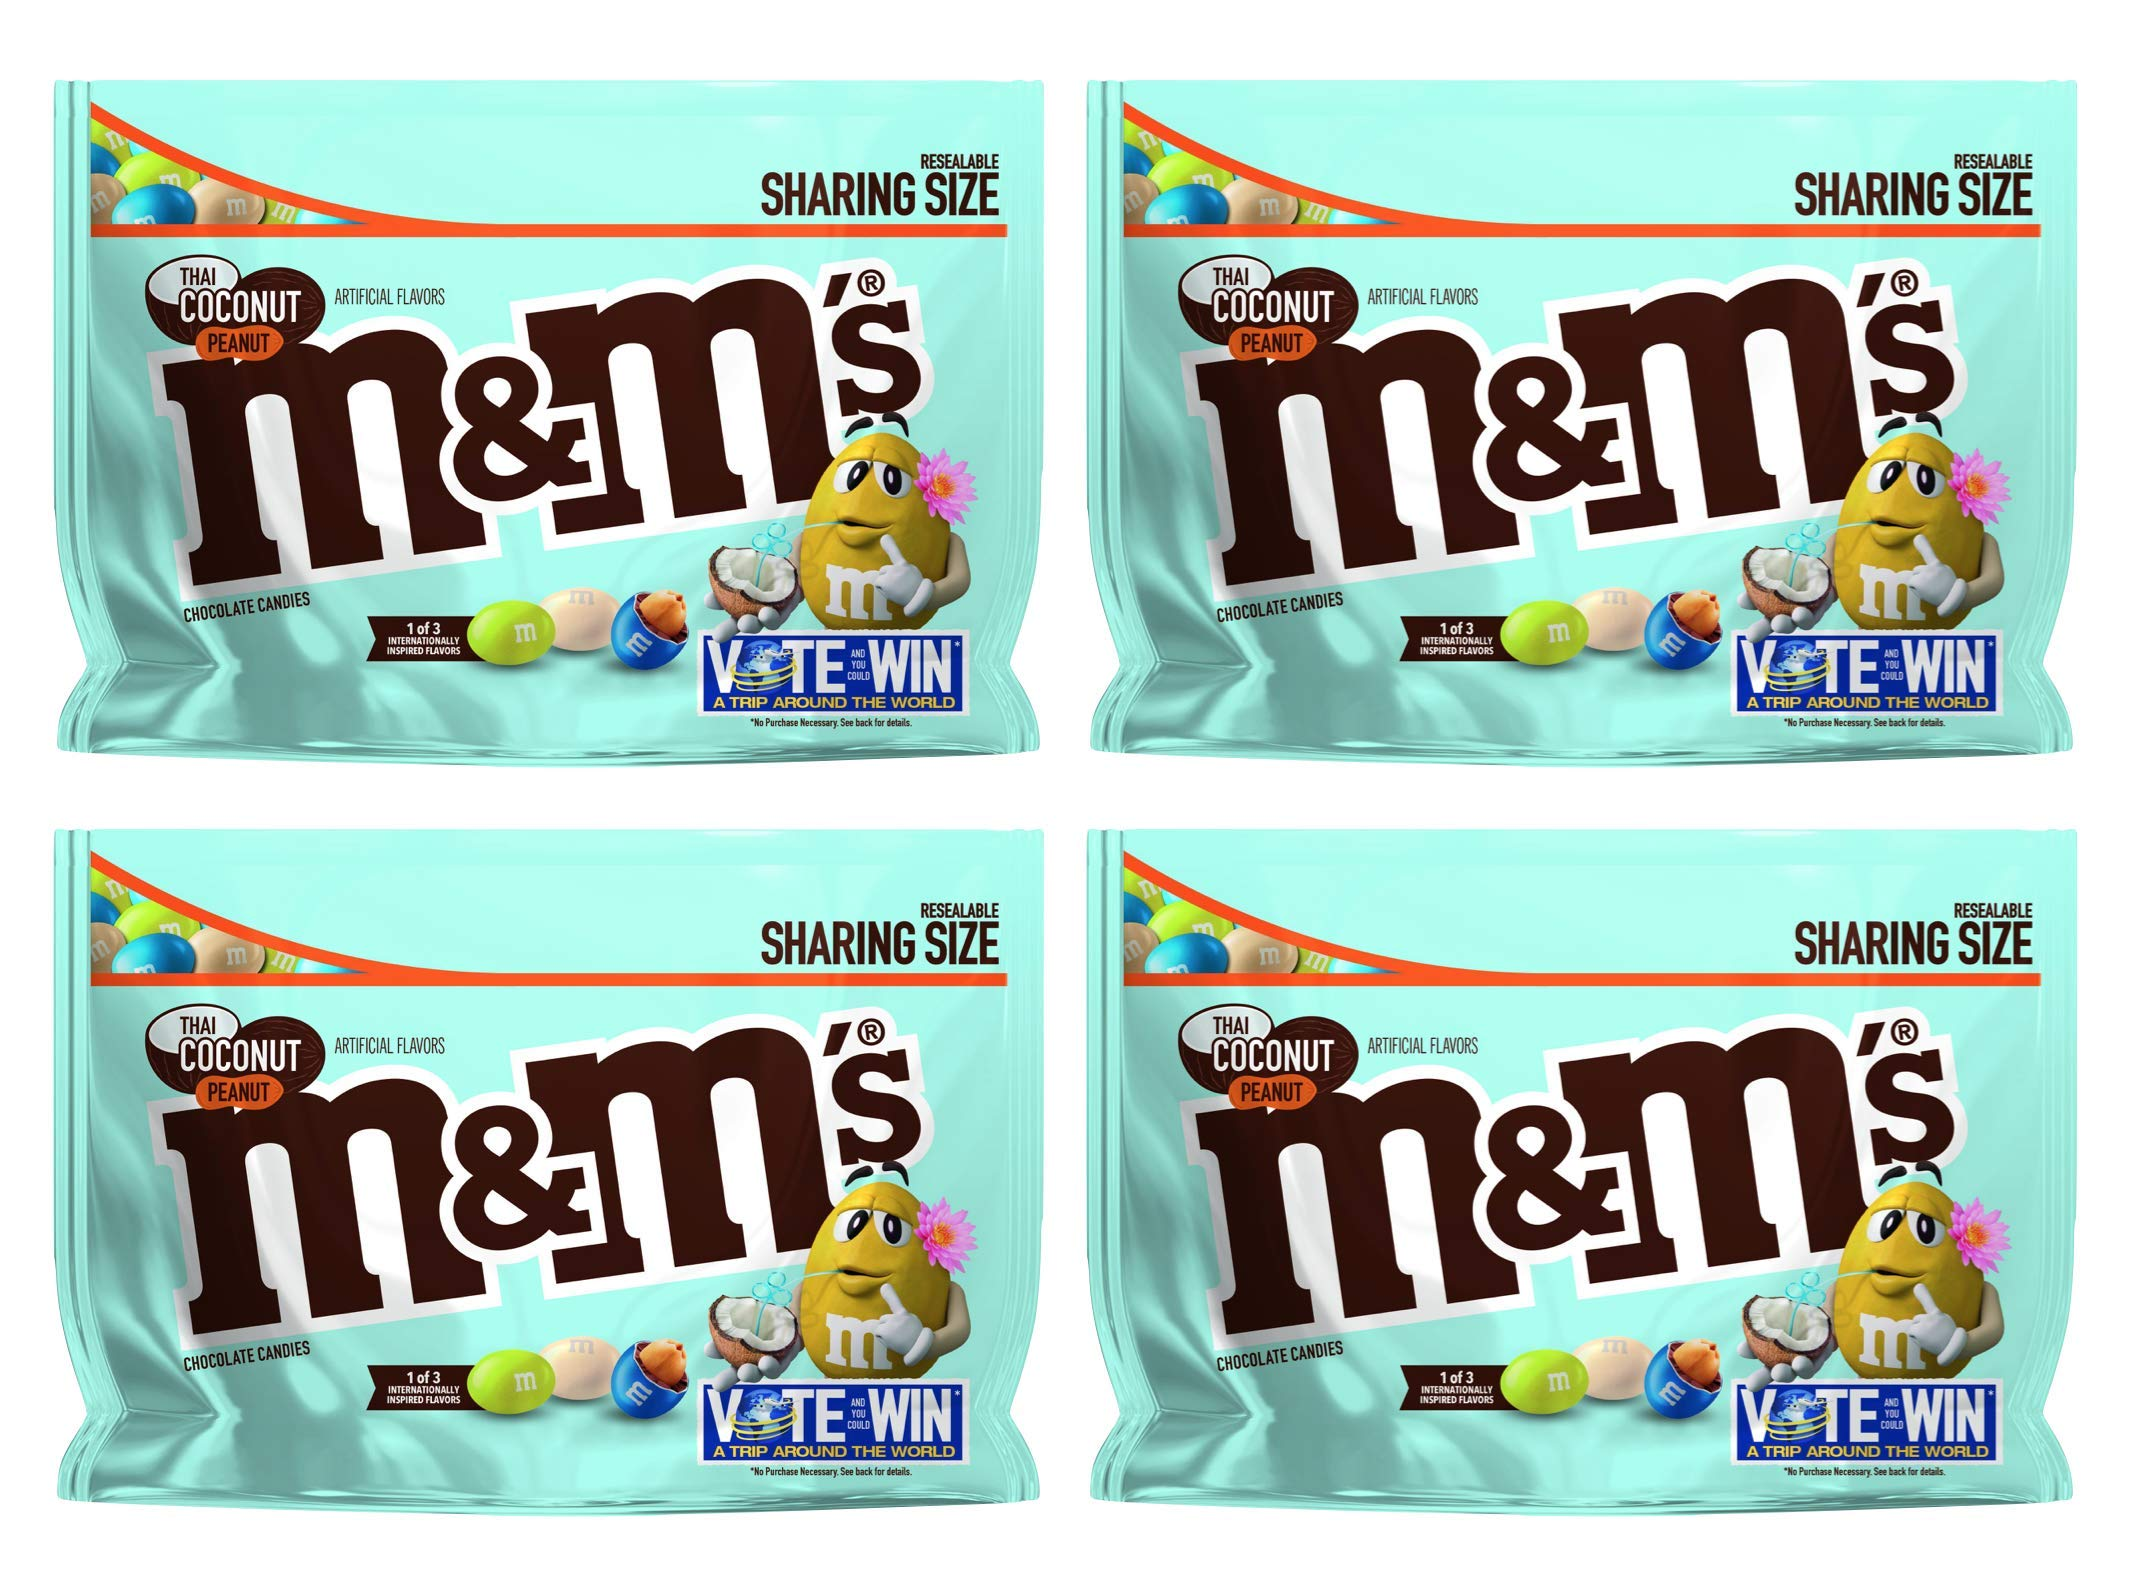 M&M's (Pack of 4) Chocolate Candy Flavor Vote Thai Coconut Peanut Sharing Size, 9.6 Ounce Bag by M&M'S (Image #1)